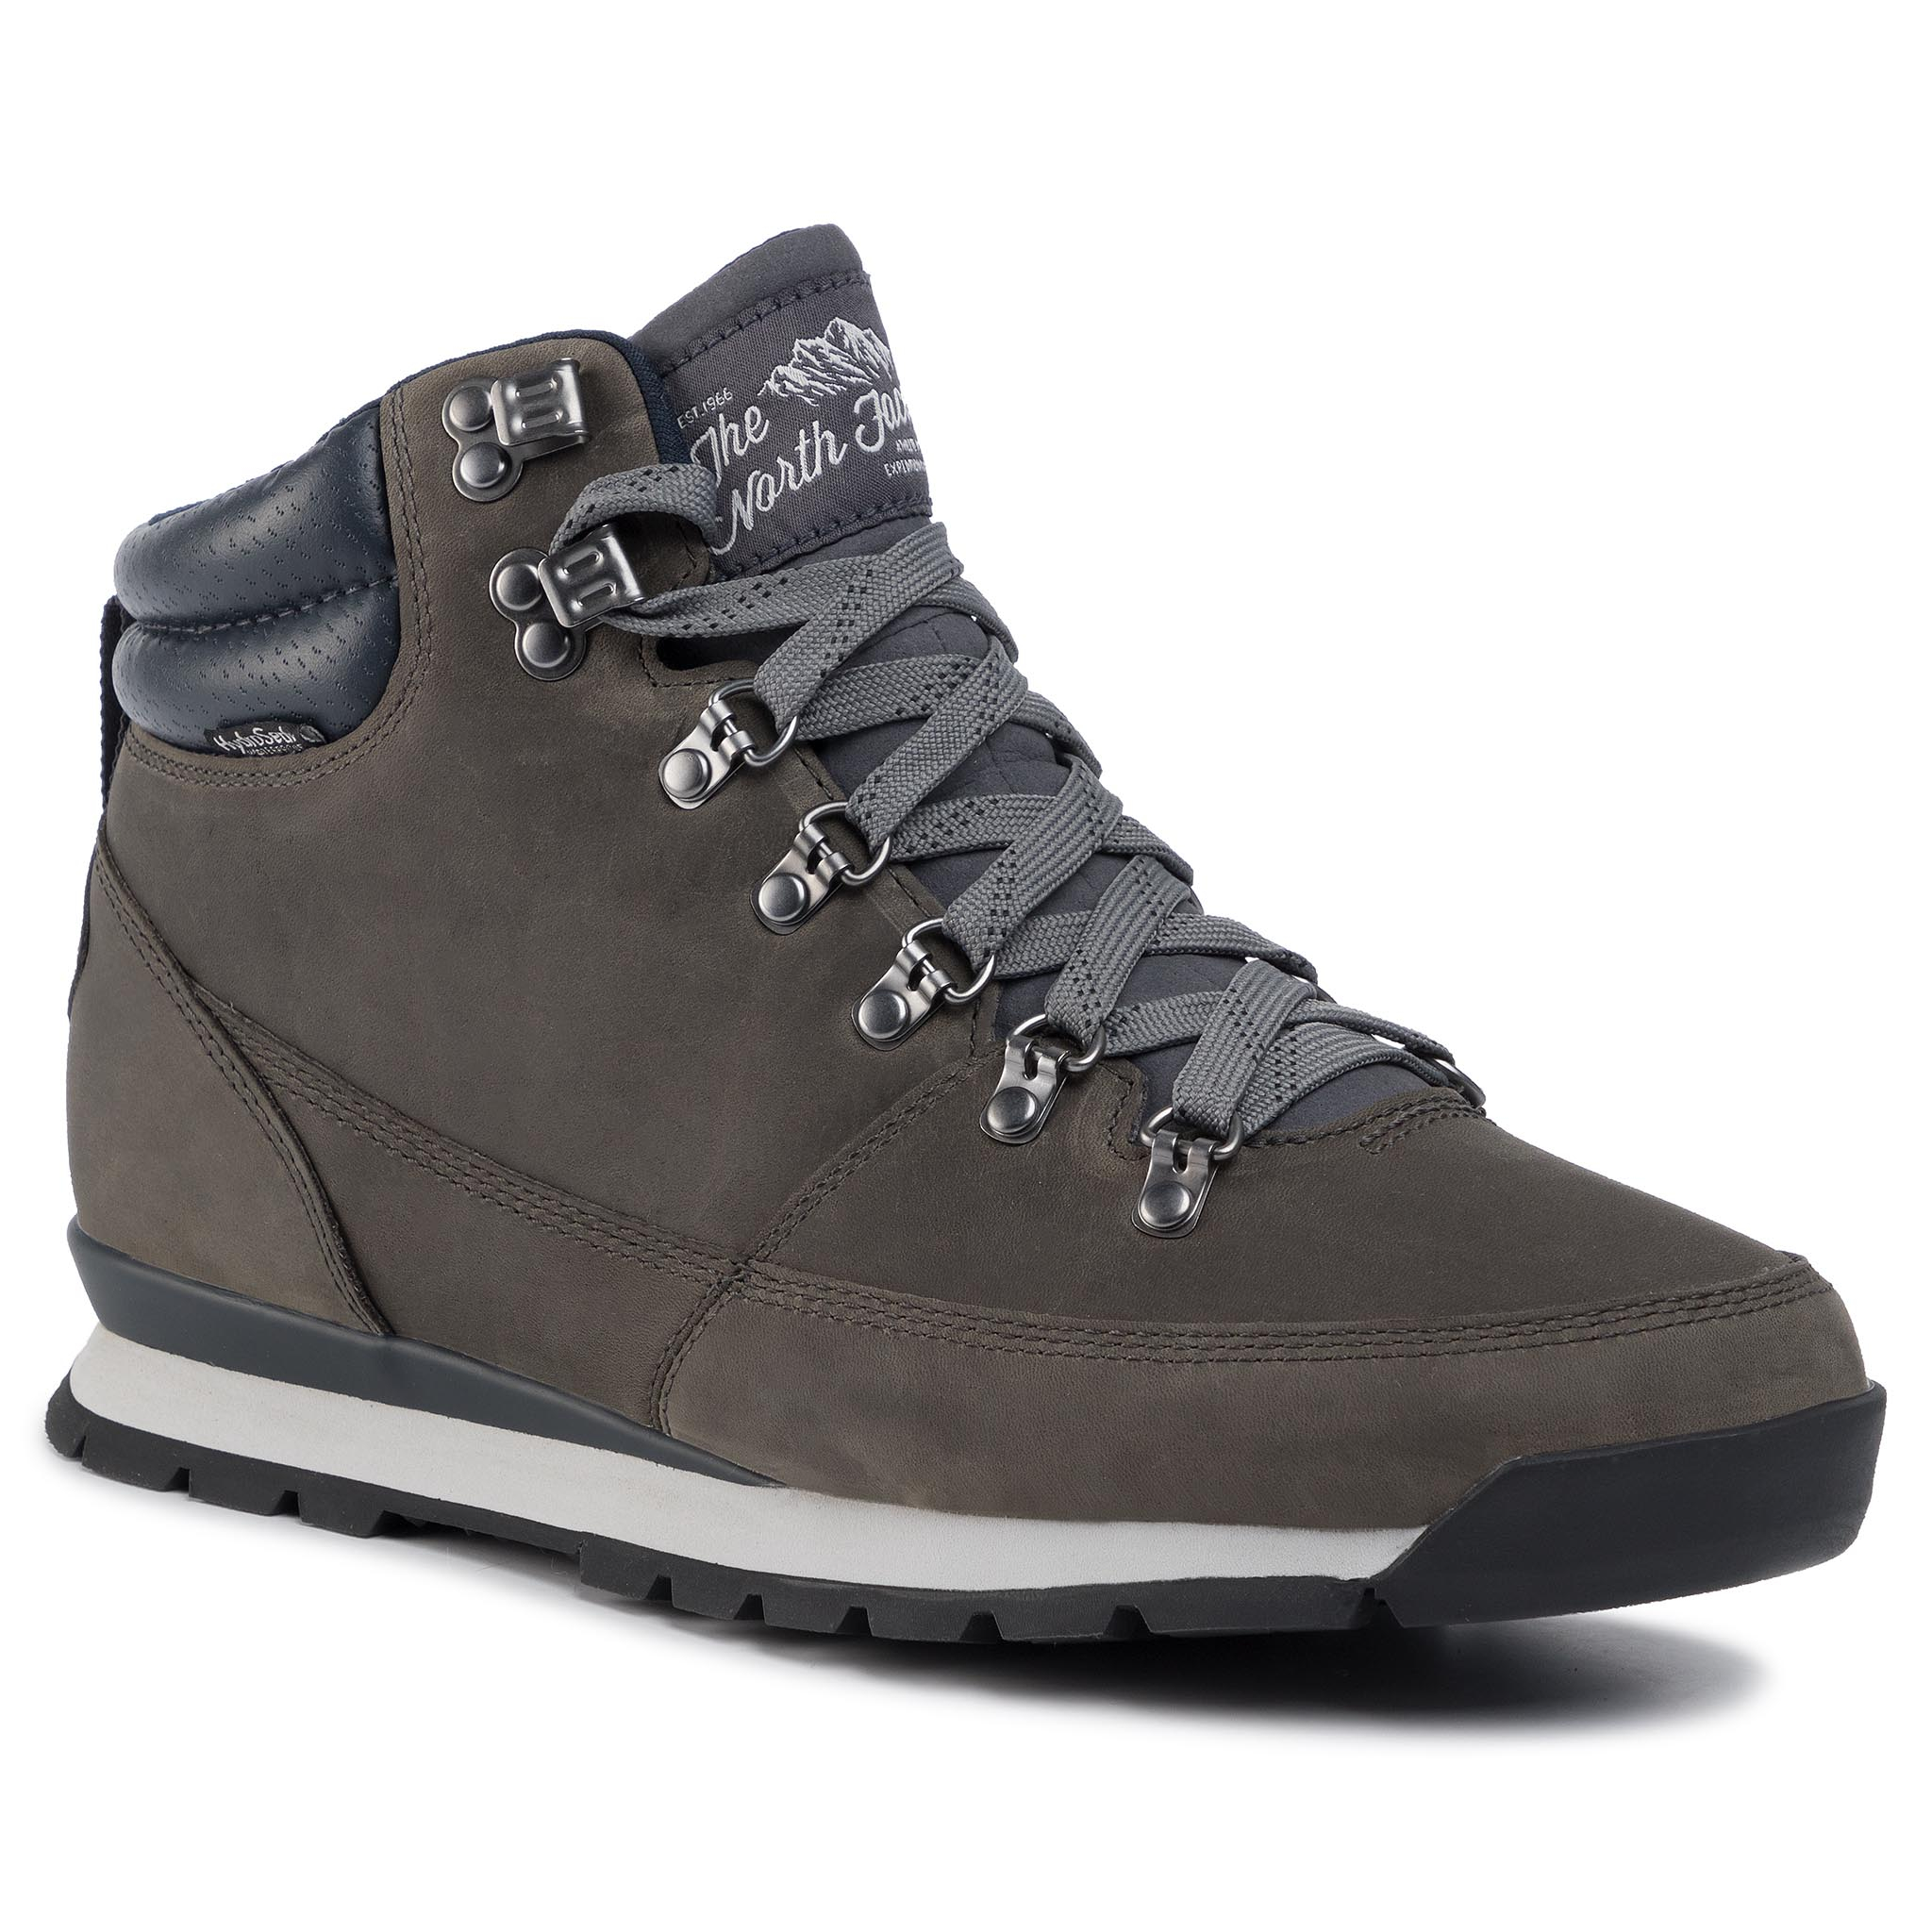 Trekkings THE NORTH FACE - Back-To Berkeley Redux Leather T0CDL0H73 Zinc Grey/ Ebony Grey